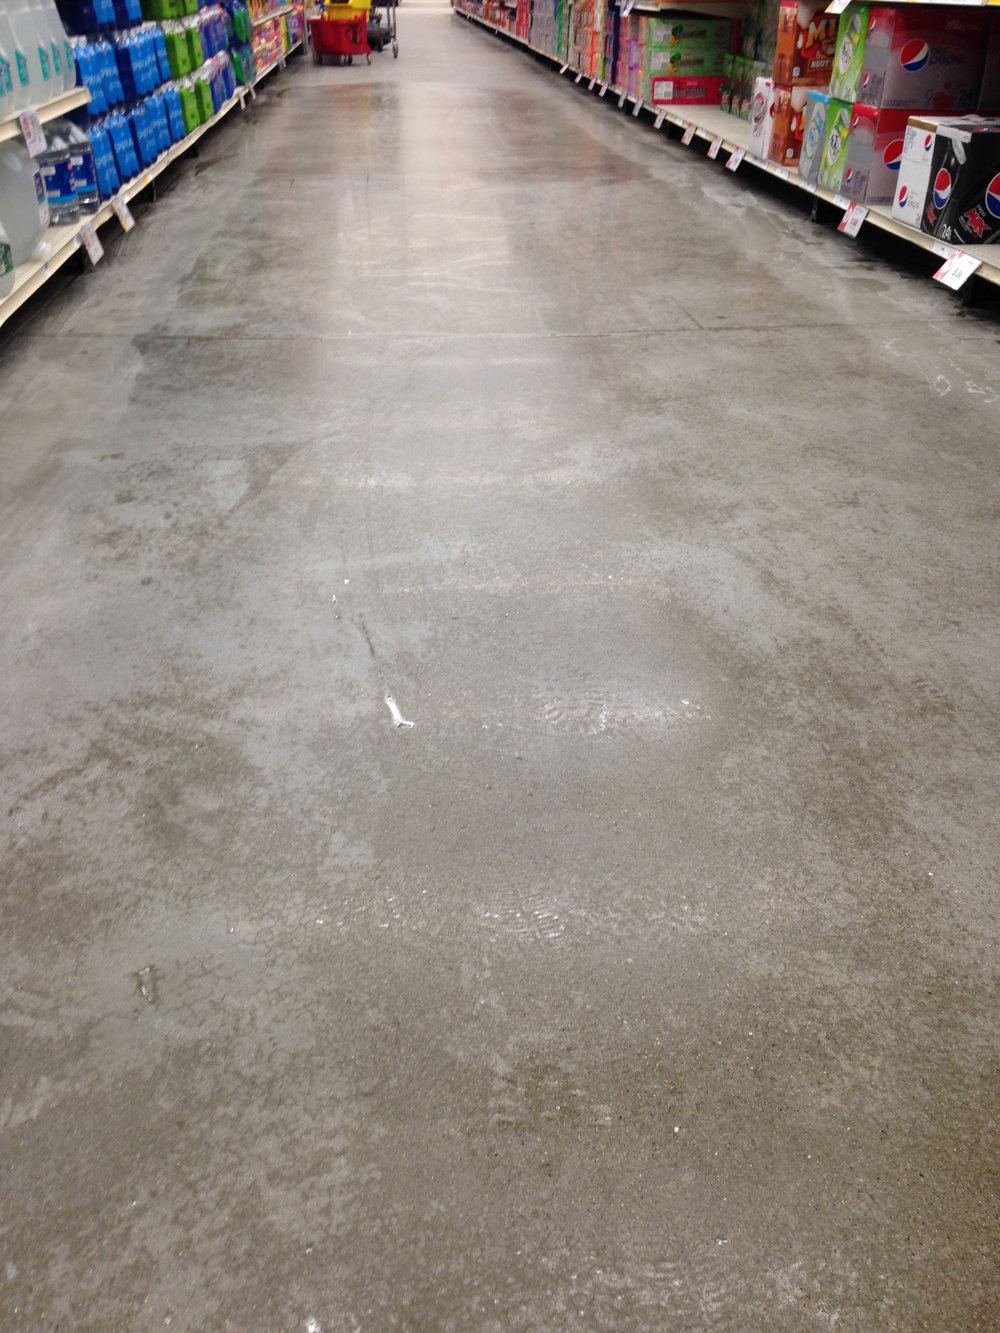 Grocery Store Floors Before